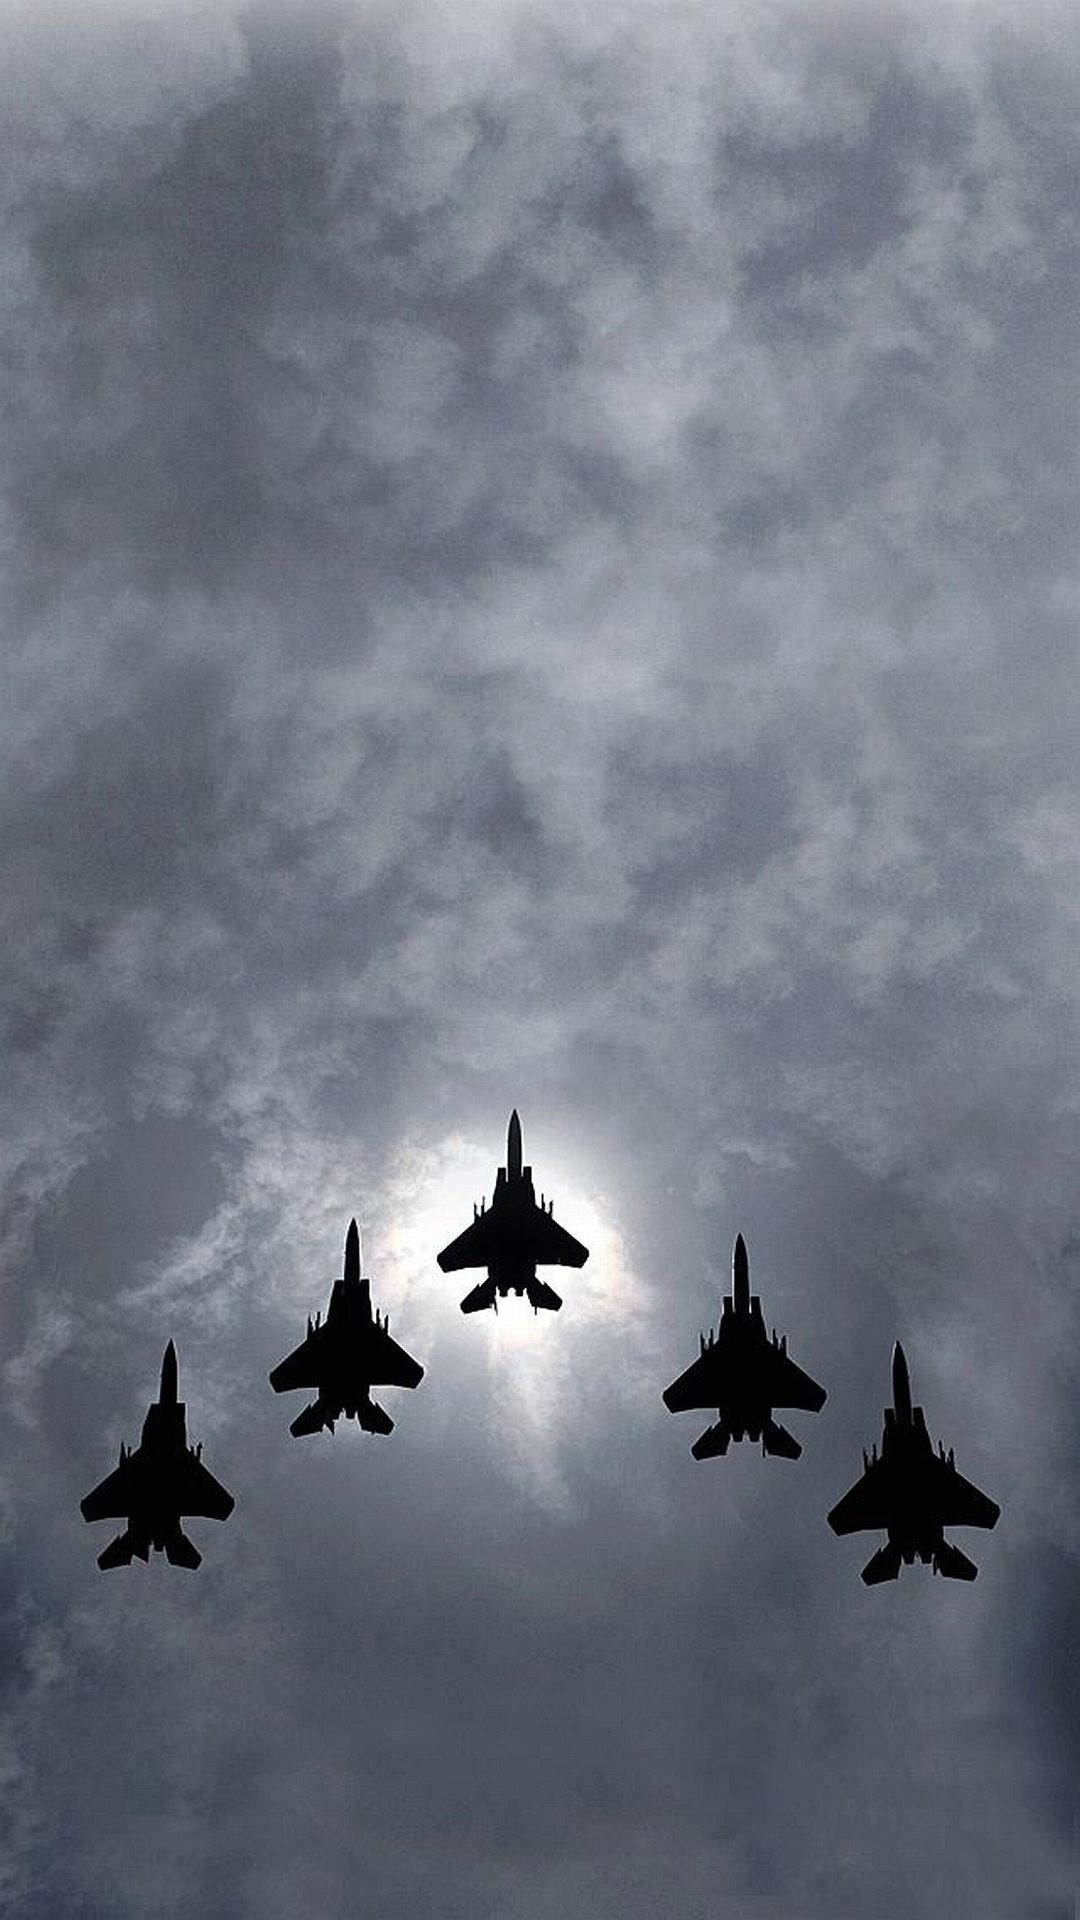 1080x1920 - Air Force Wallpaper for iPhone 3